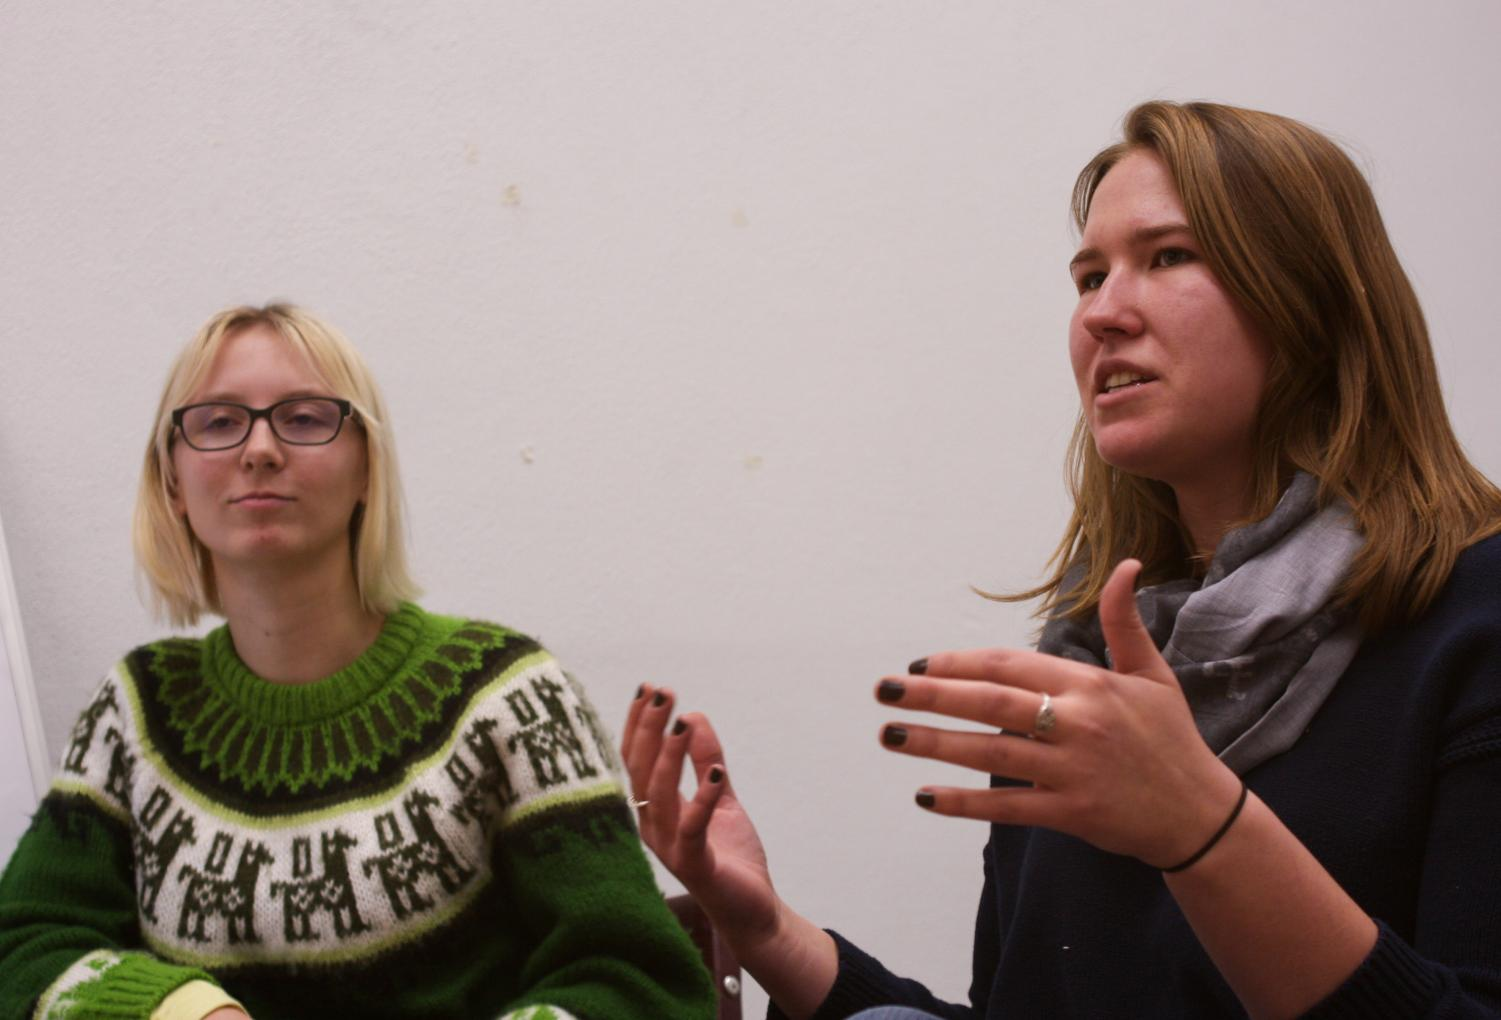 Co-presidents Jennifer Beyer, left, and Laila Reimanis explain their goal for the Environmental Science Club to raise zero waste awareness Tuesday in Fulmer Hall.